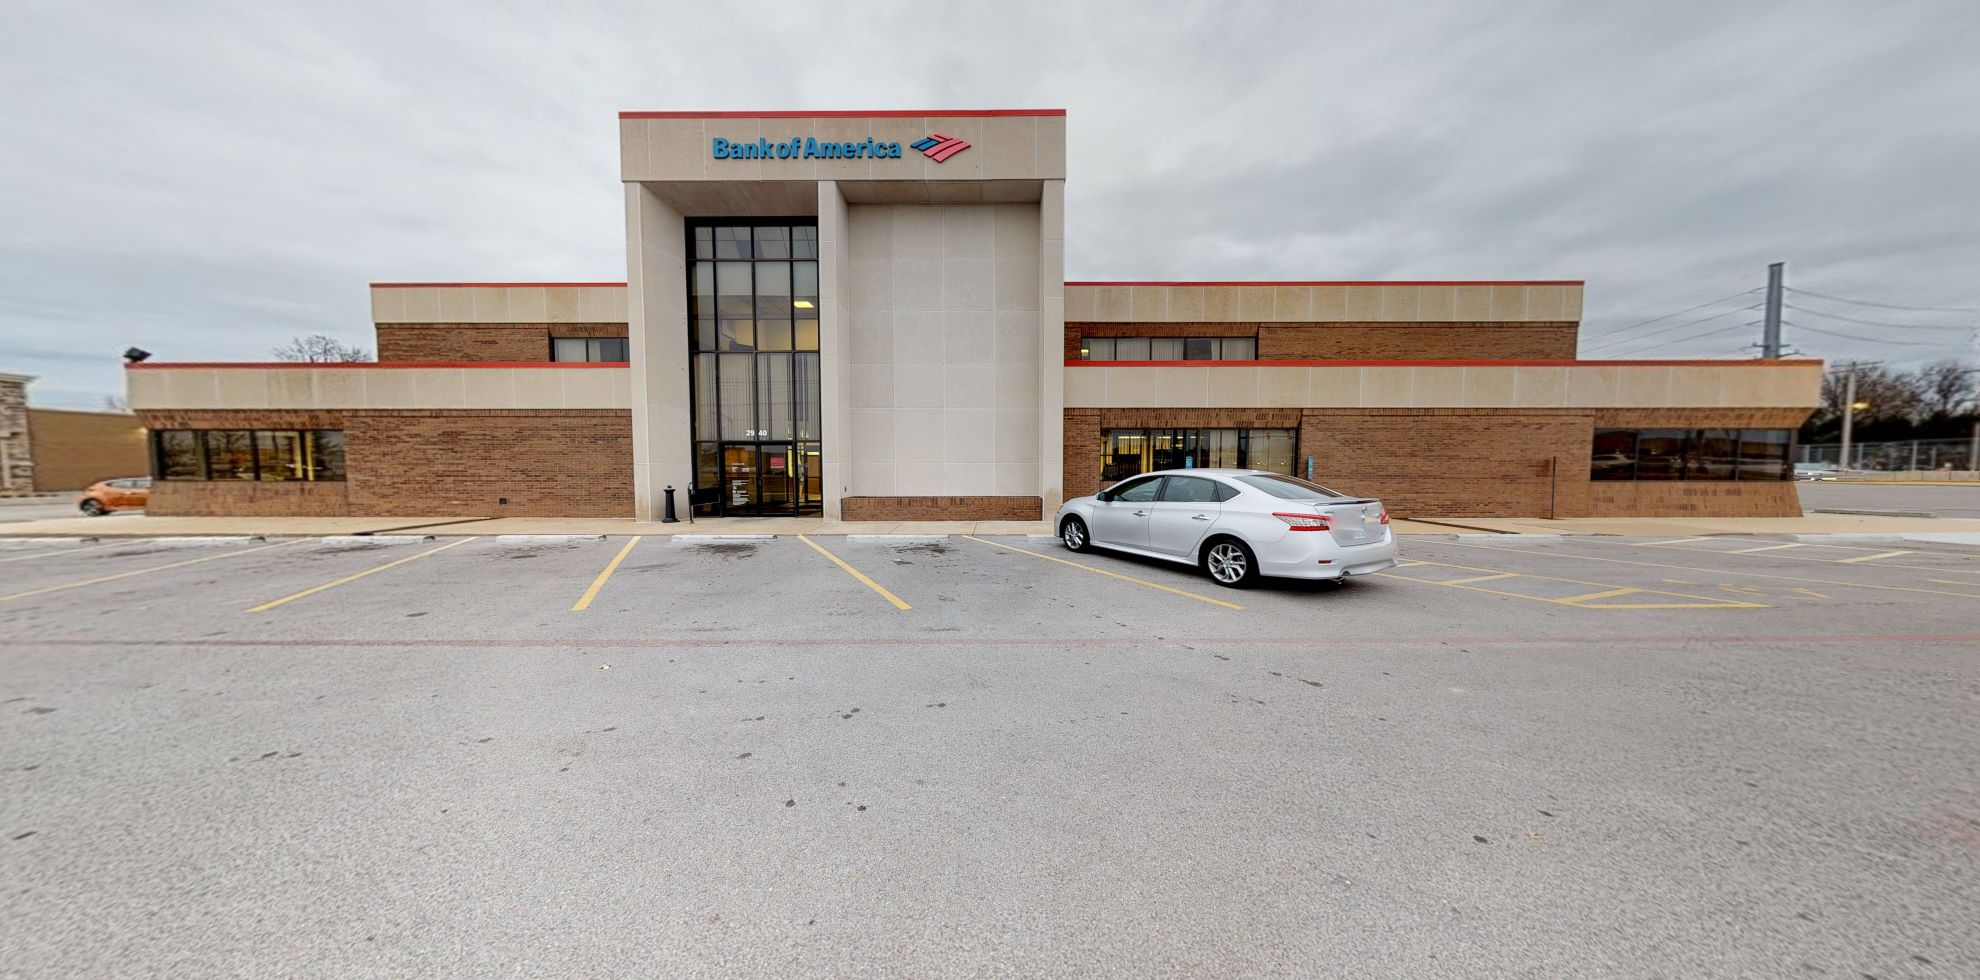 Bank of America financial center with drive-thru ATM and teller | 2940 S Glenstone Ave, Springfield, MO 65804